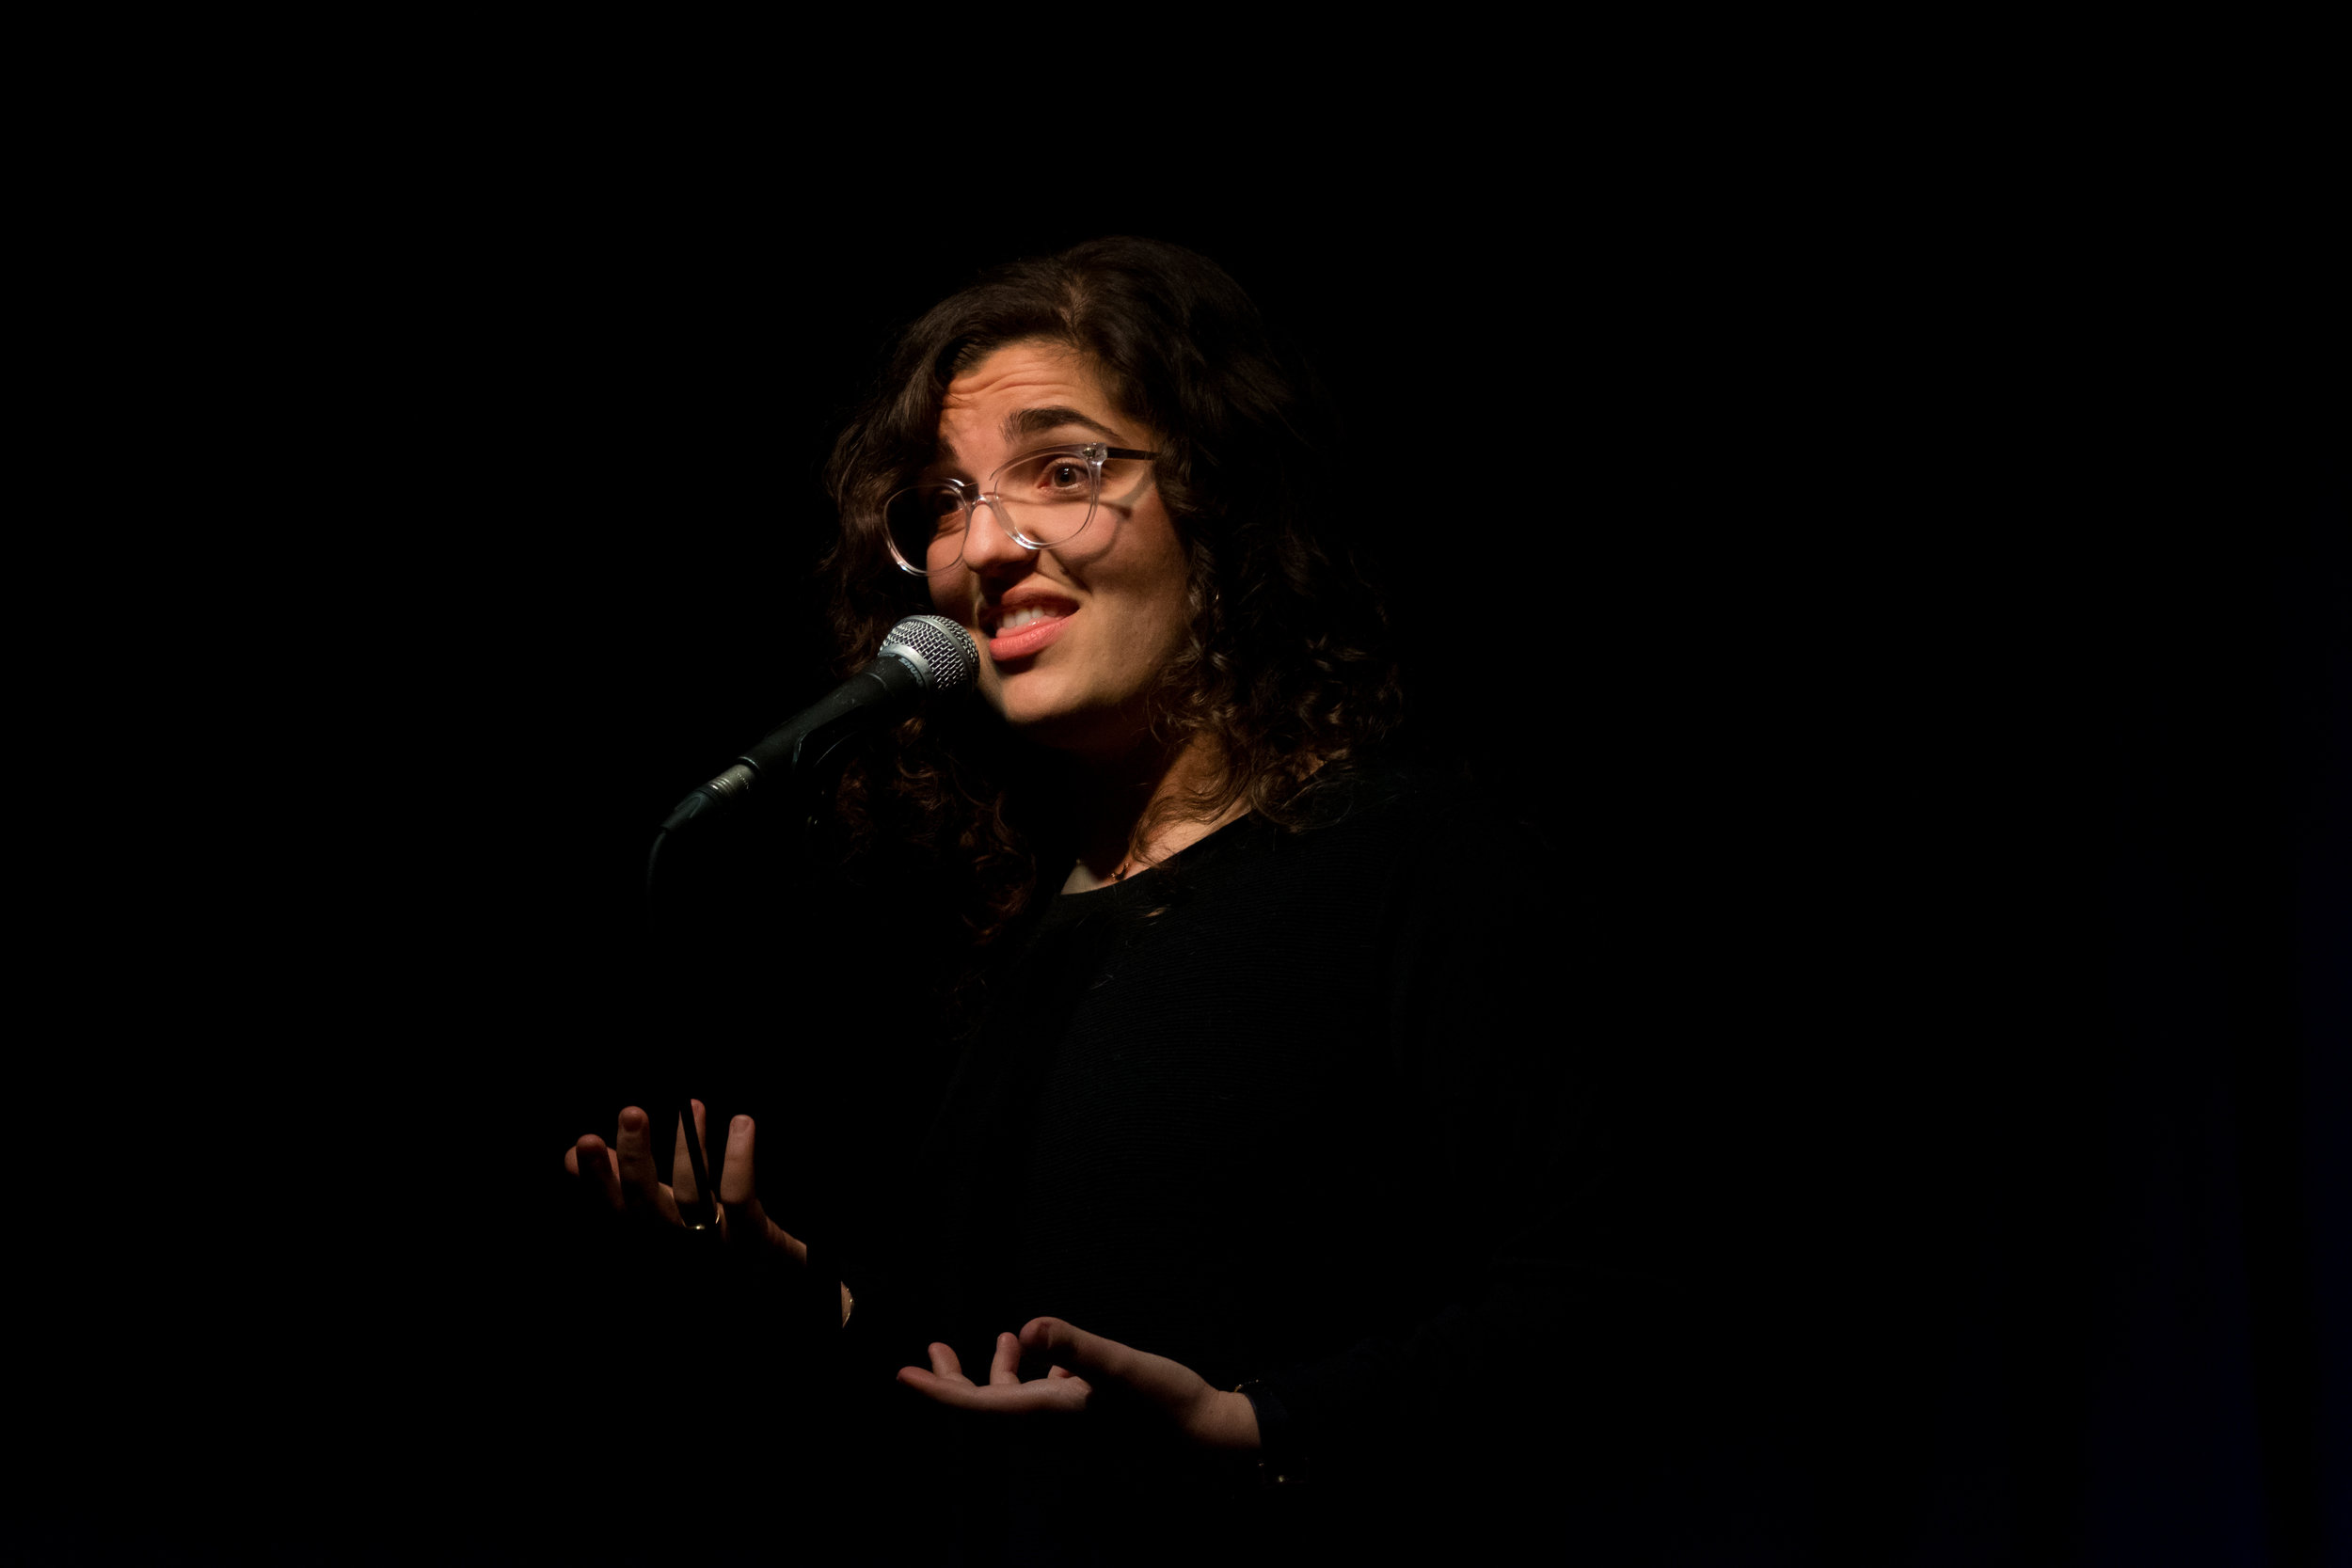 Laura Crocco shares her story with the Story Collider audience at Burdock in Toronto, ON in April 2019. Photo by Stacey McDonald.